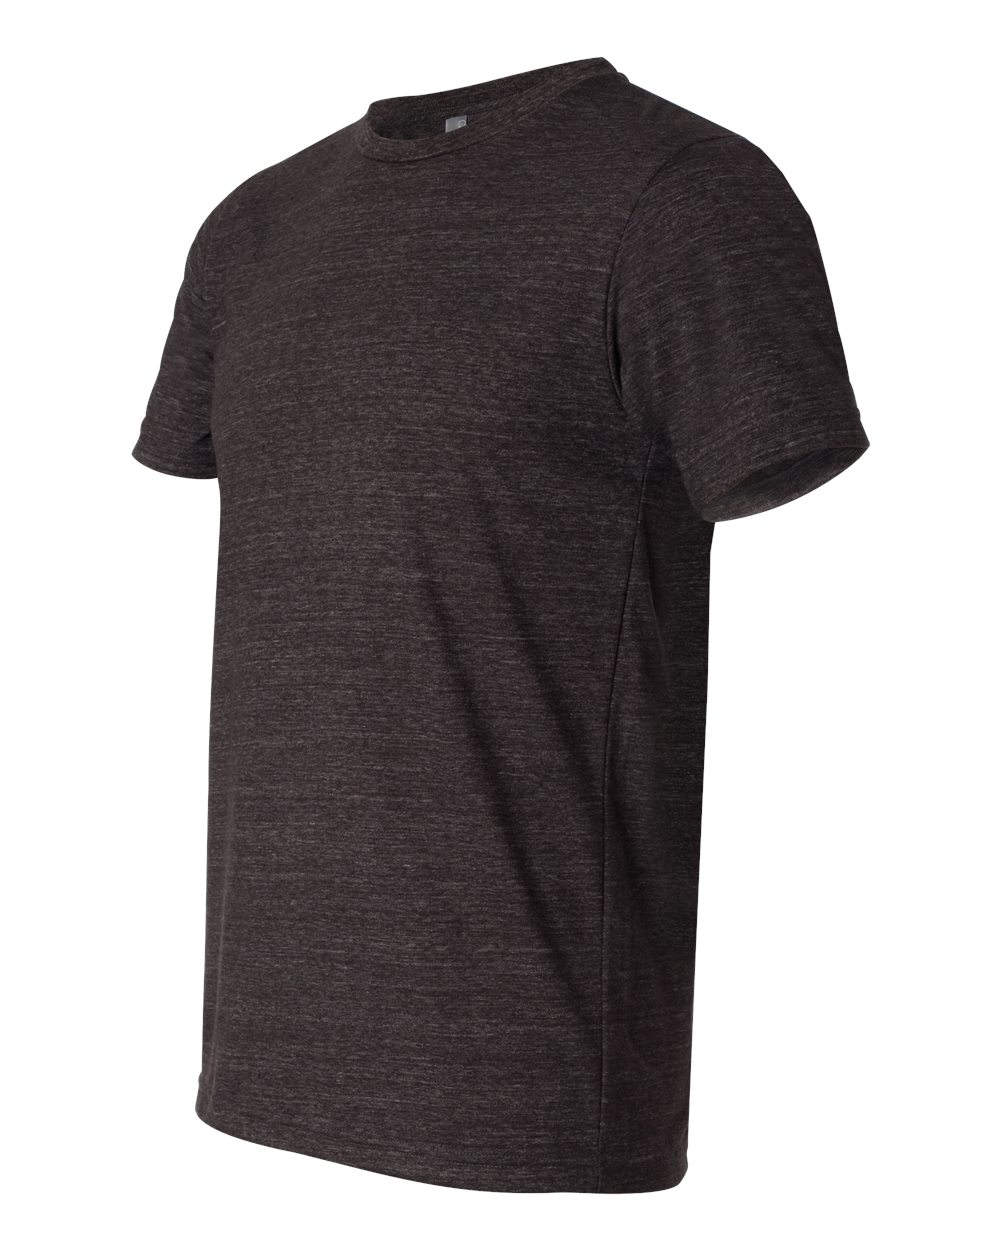 Canvas 3413 - For the ultimate soft, vintage feel, there is no better option than a triblend tee. This shirt is a slimmer cut than the average tee, is available in sizes XS-4XL (select colors) and comes in an impressive variety of colors.